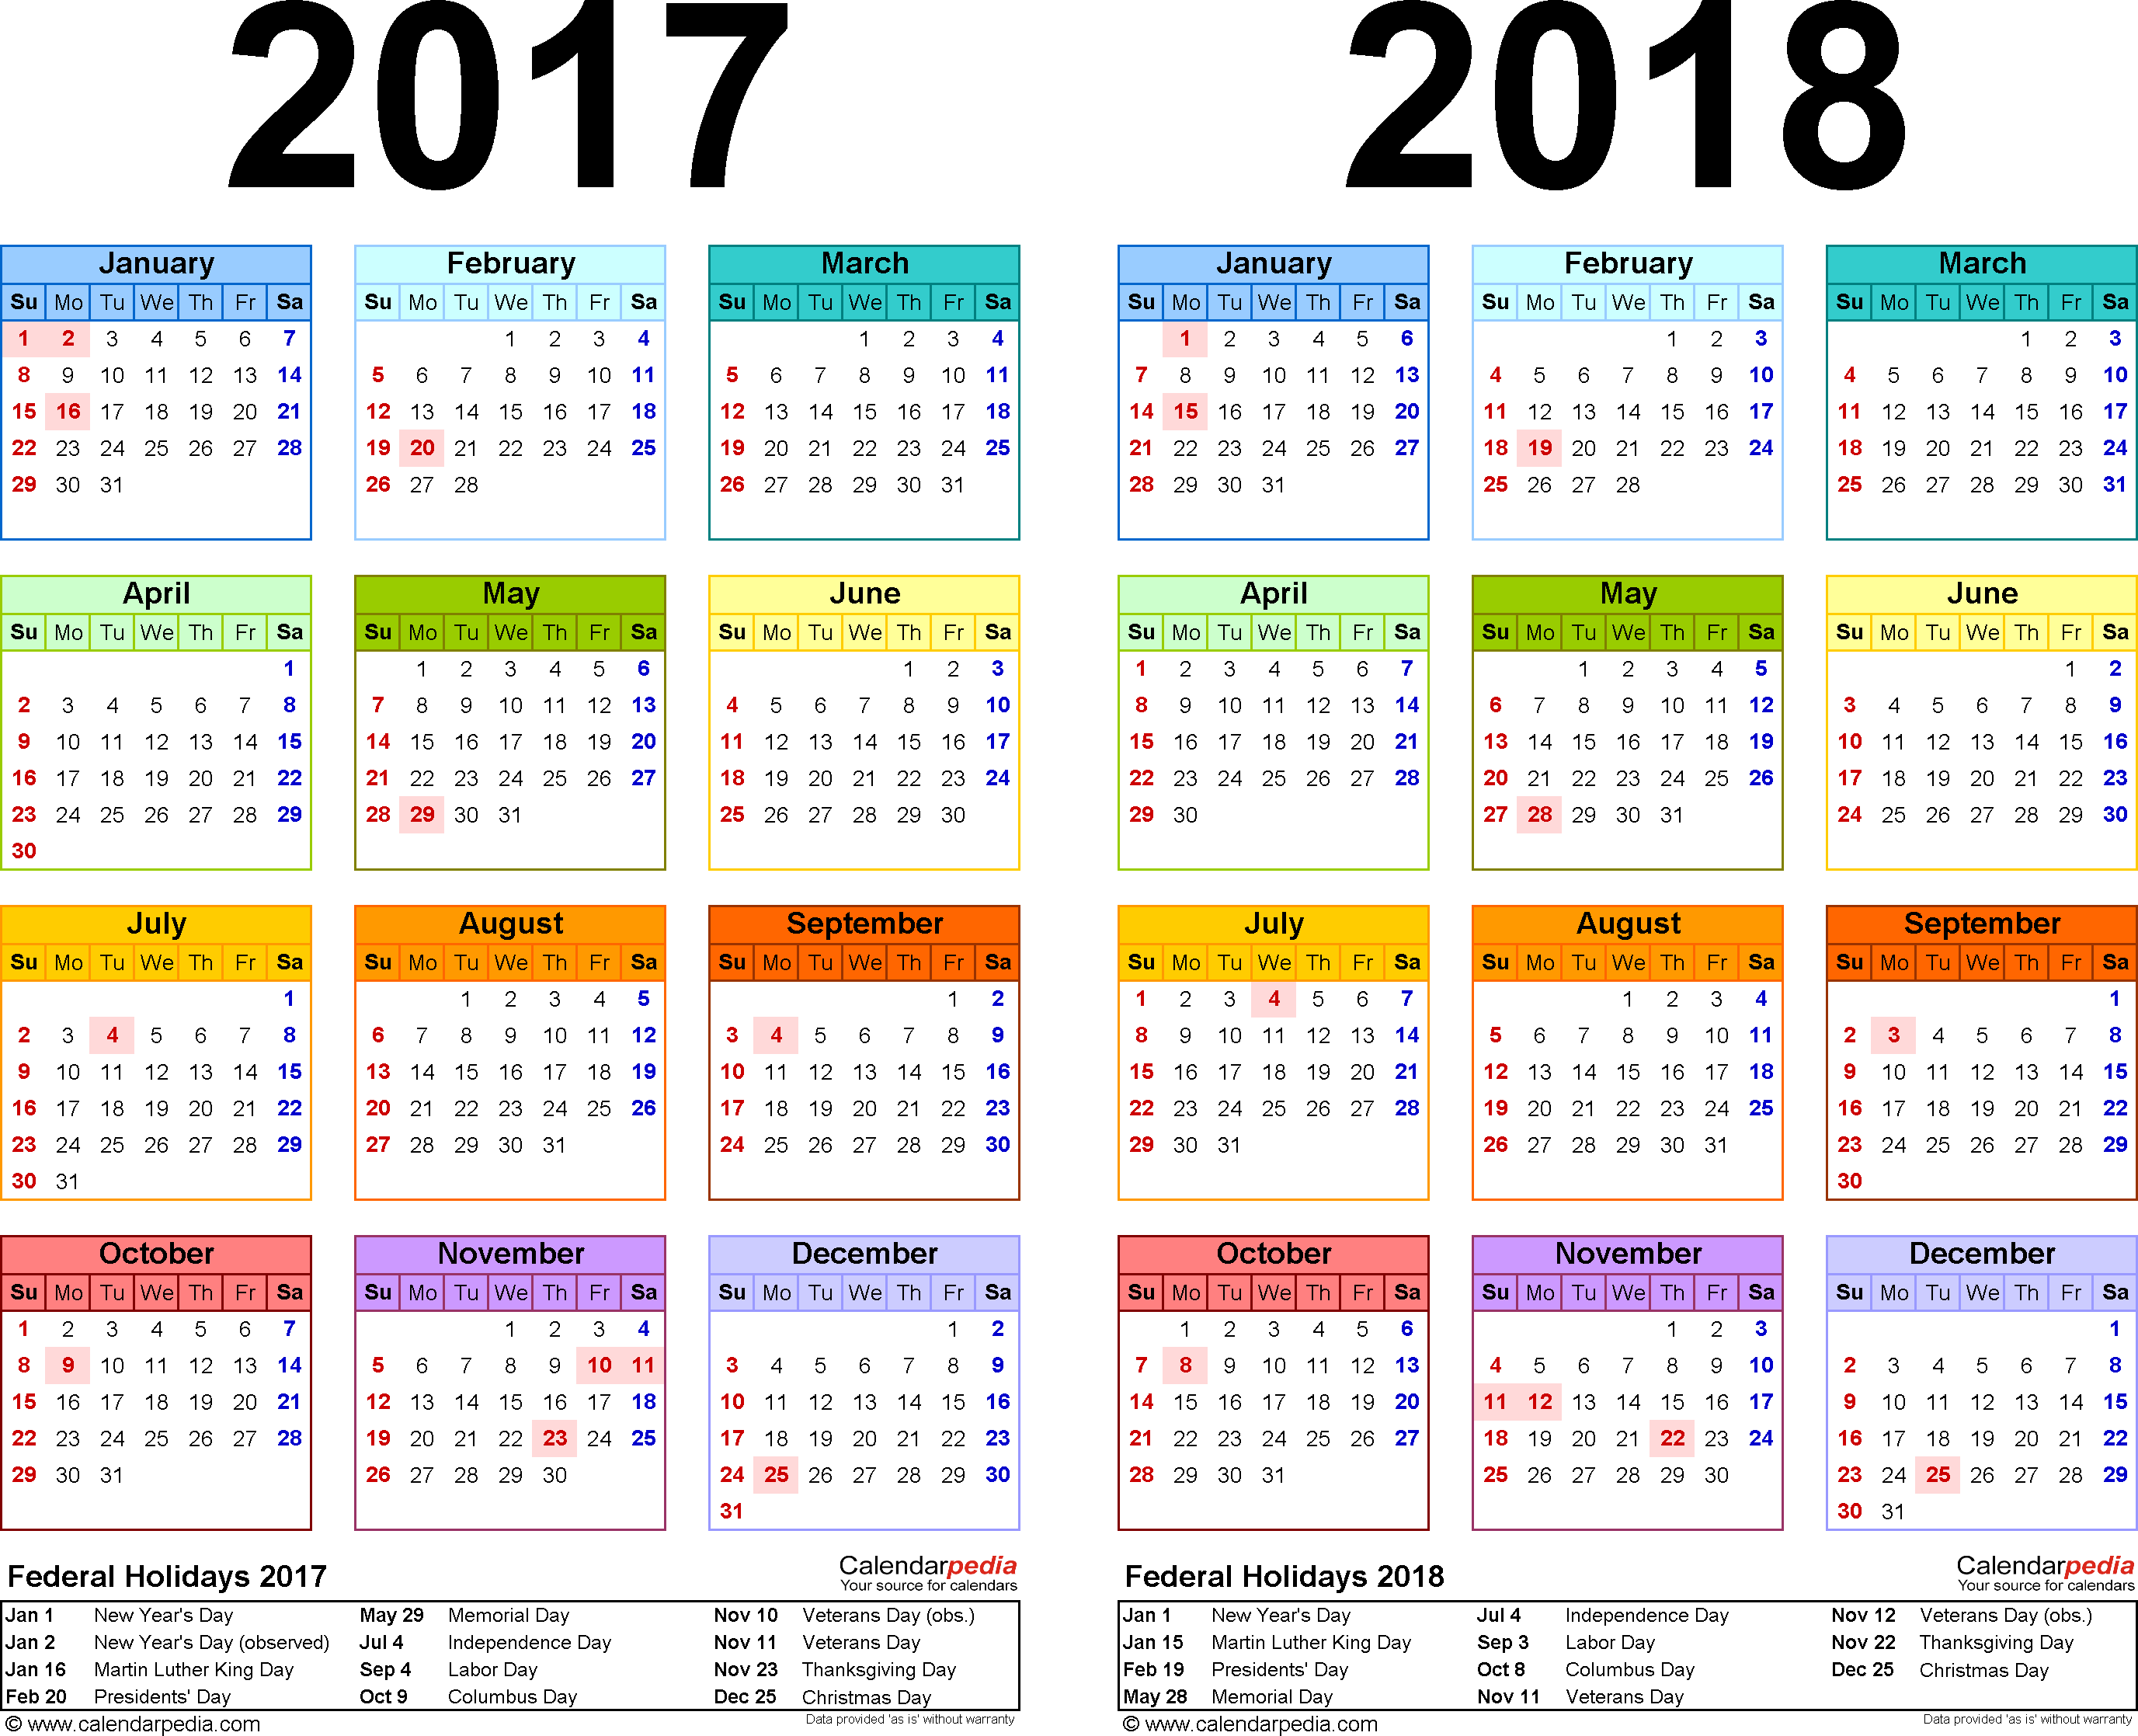 Template 2: Excel template for two year calendar 2017/2018 (landscape orientation, 1 page, in color)